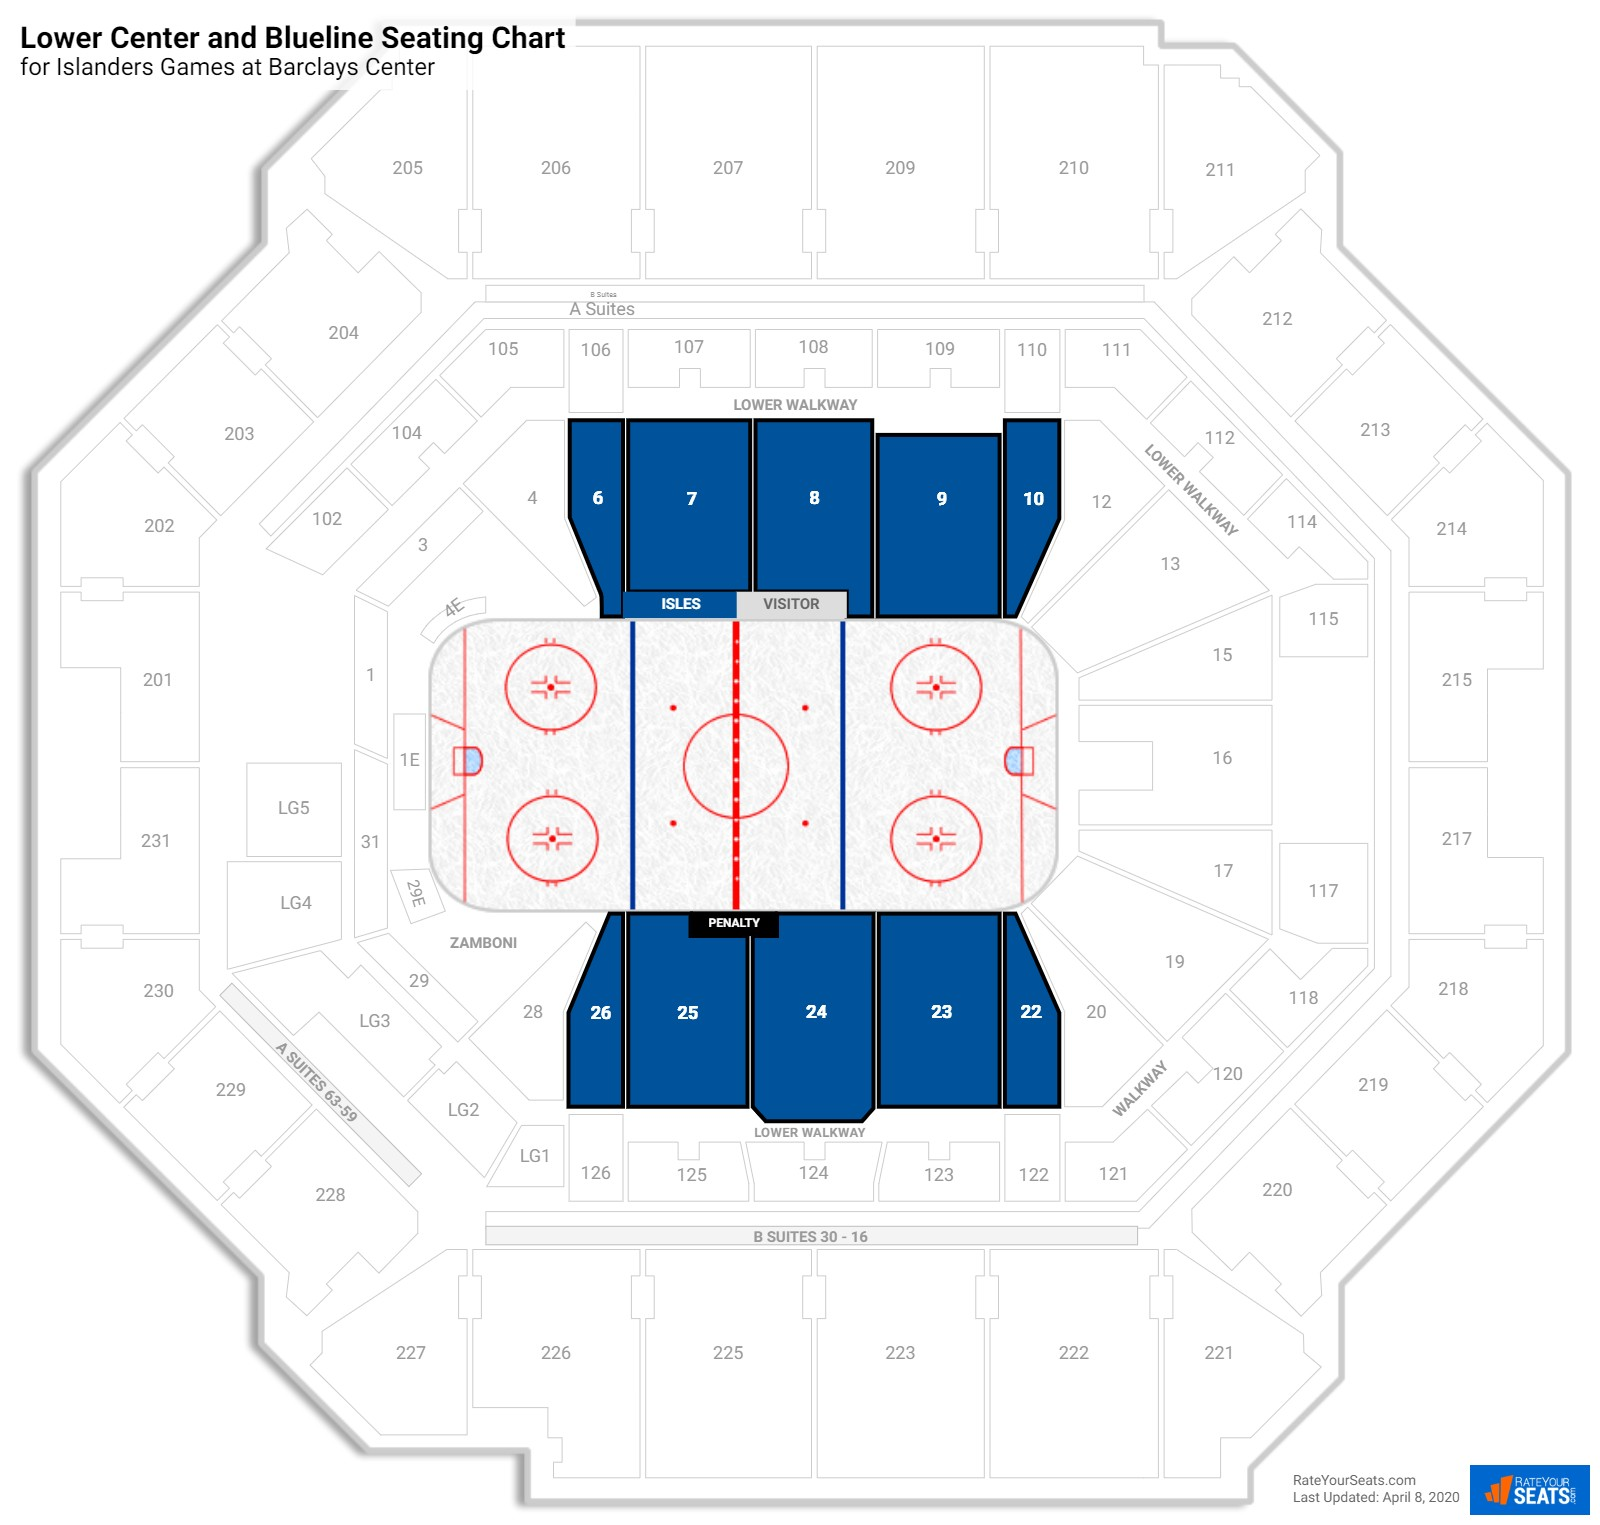 Barclays Center Lower Level Side seating chart